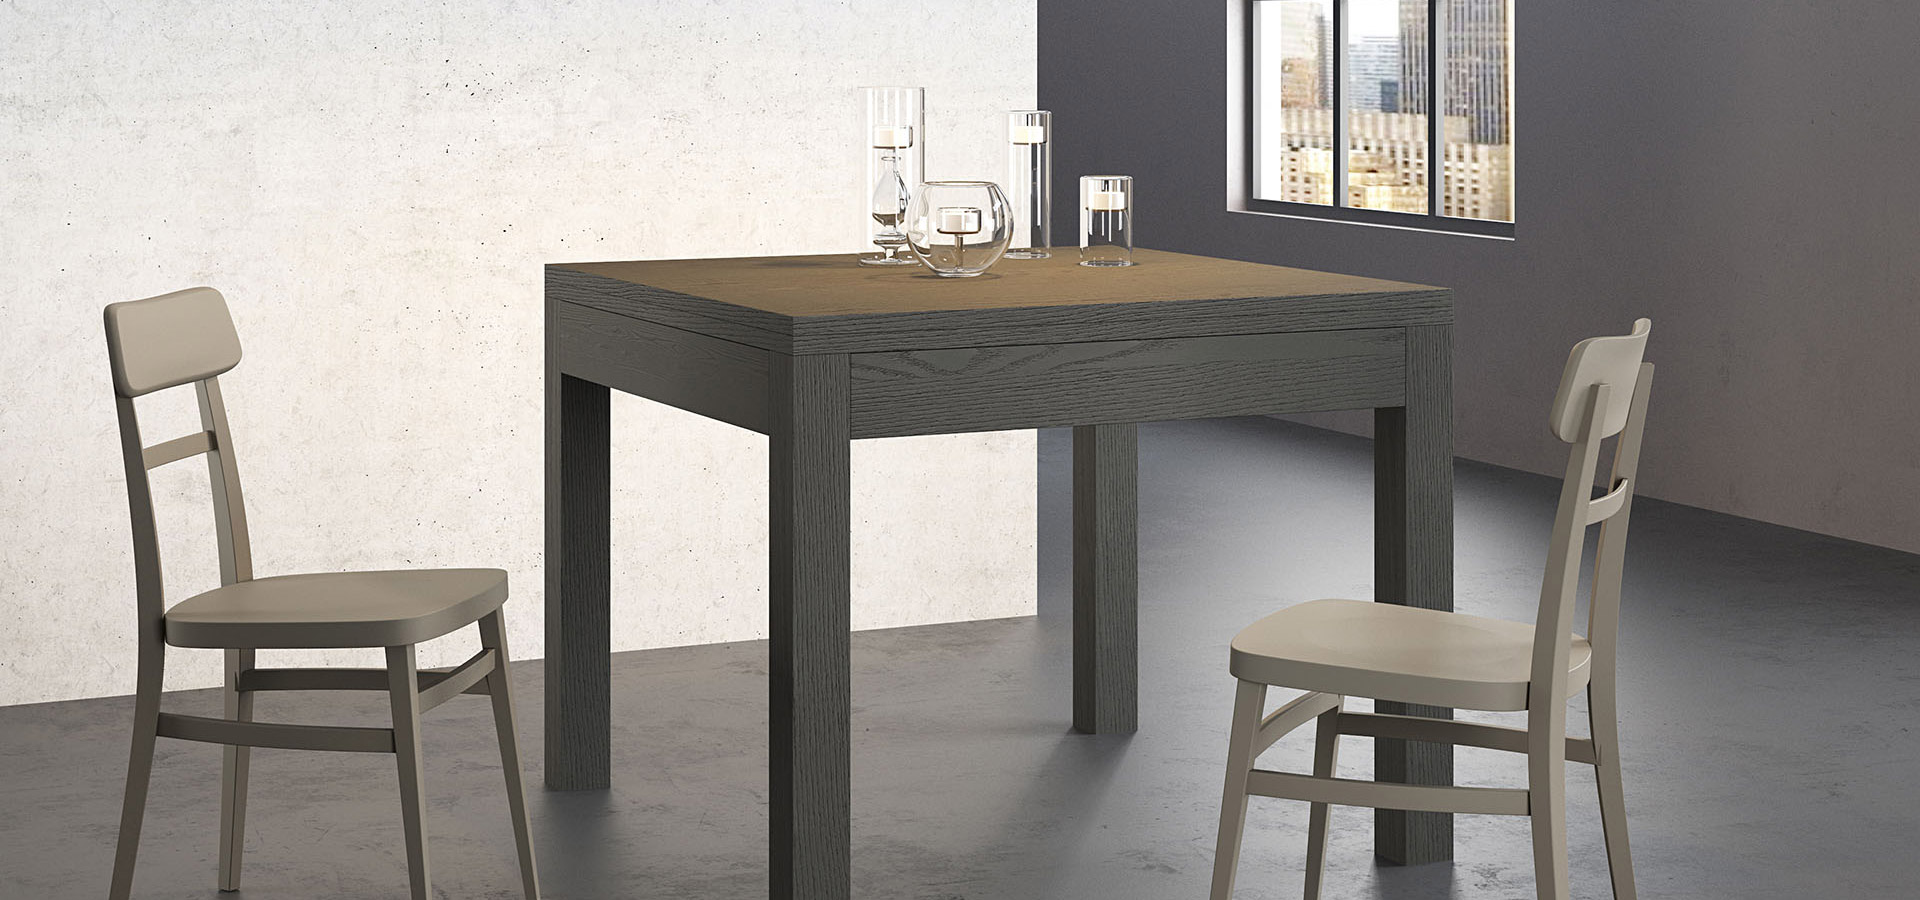 Essen tavolo dining table arredo3 for Table 90x90 conforama